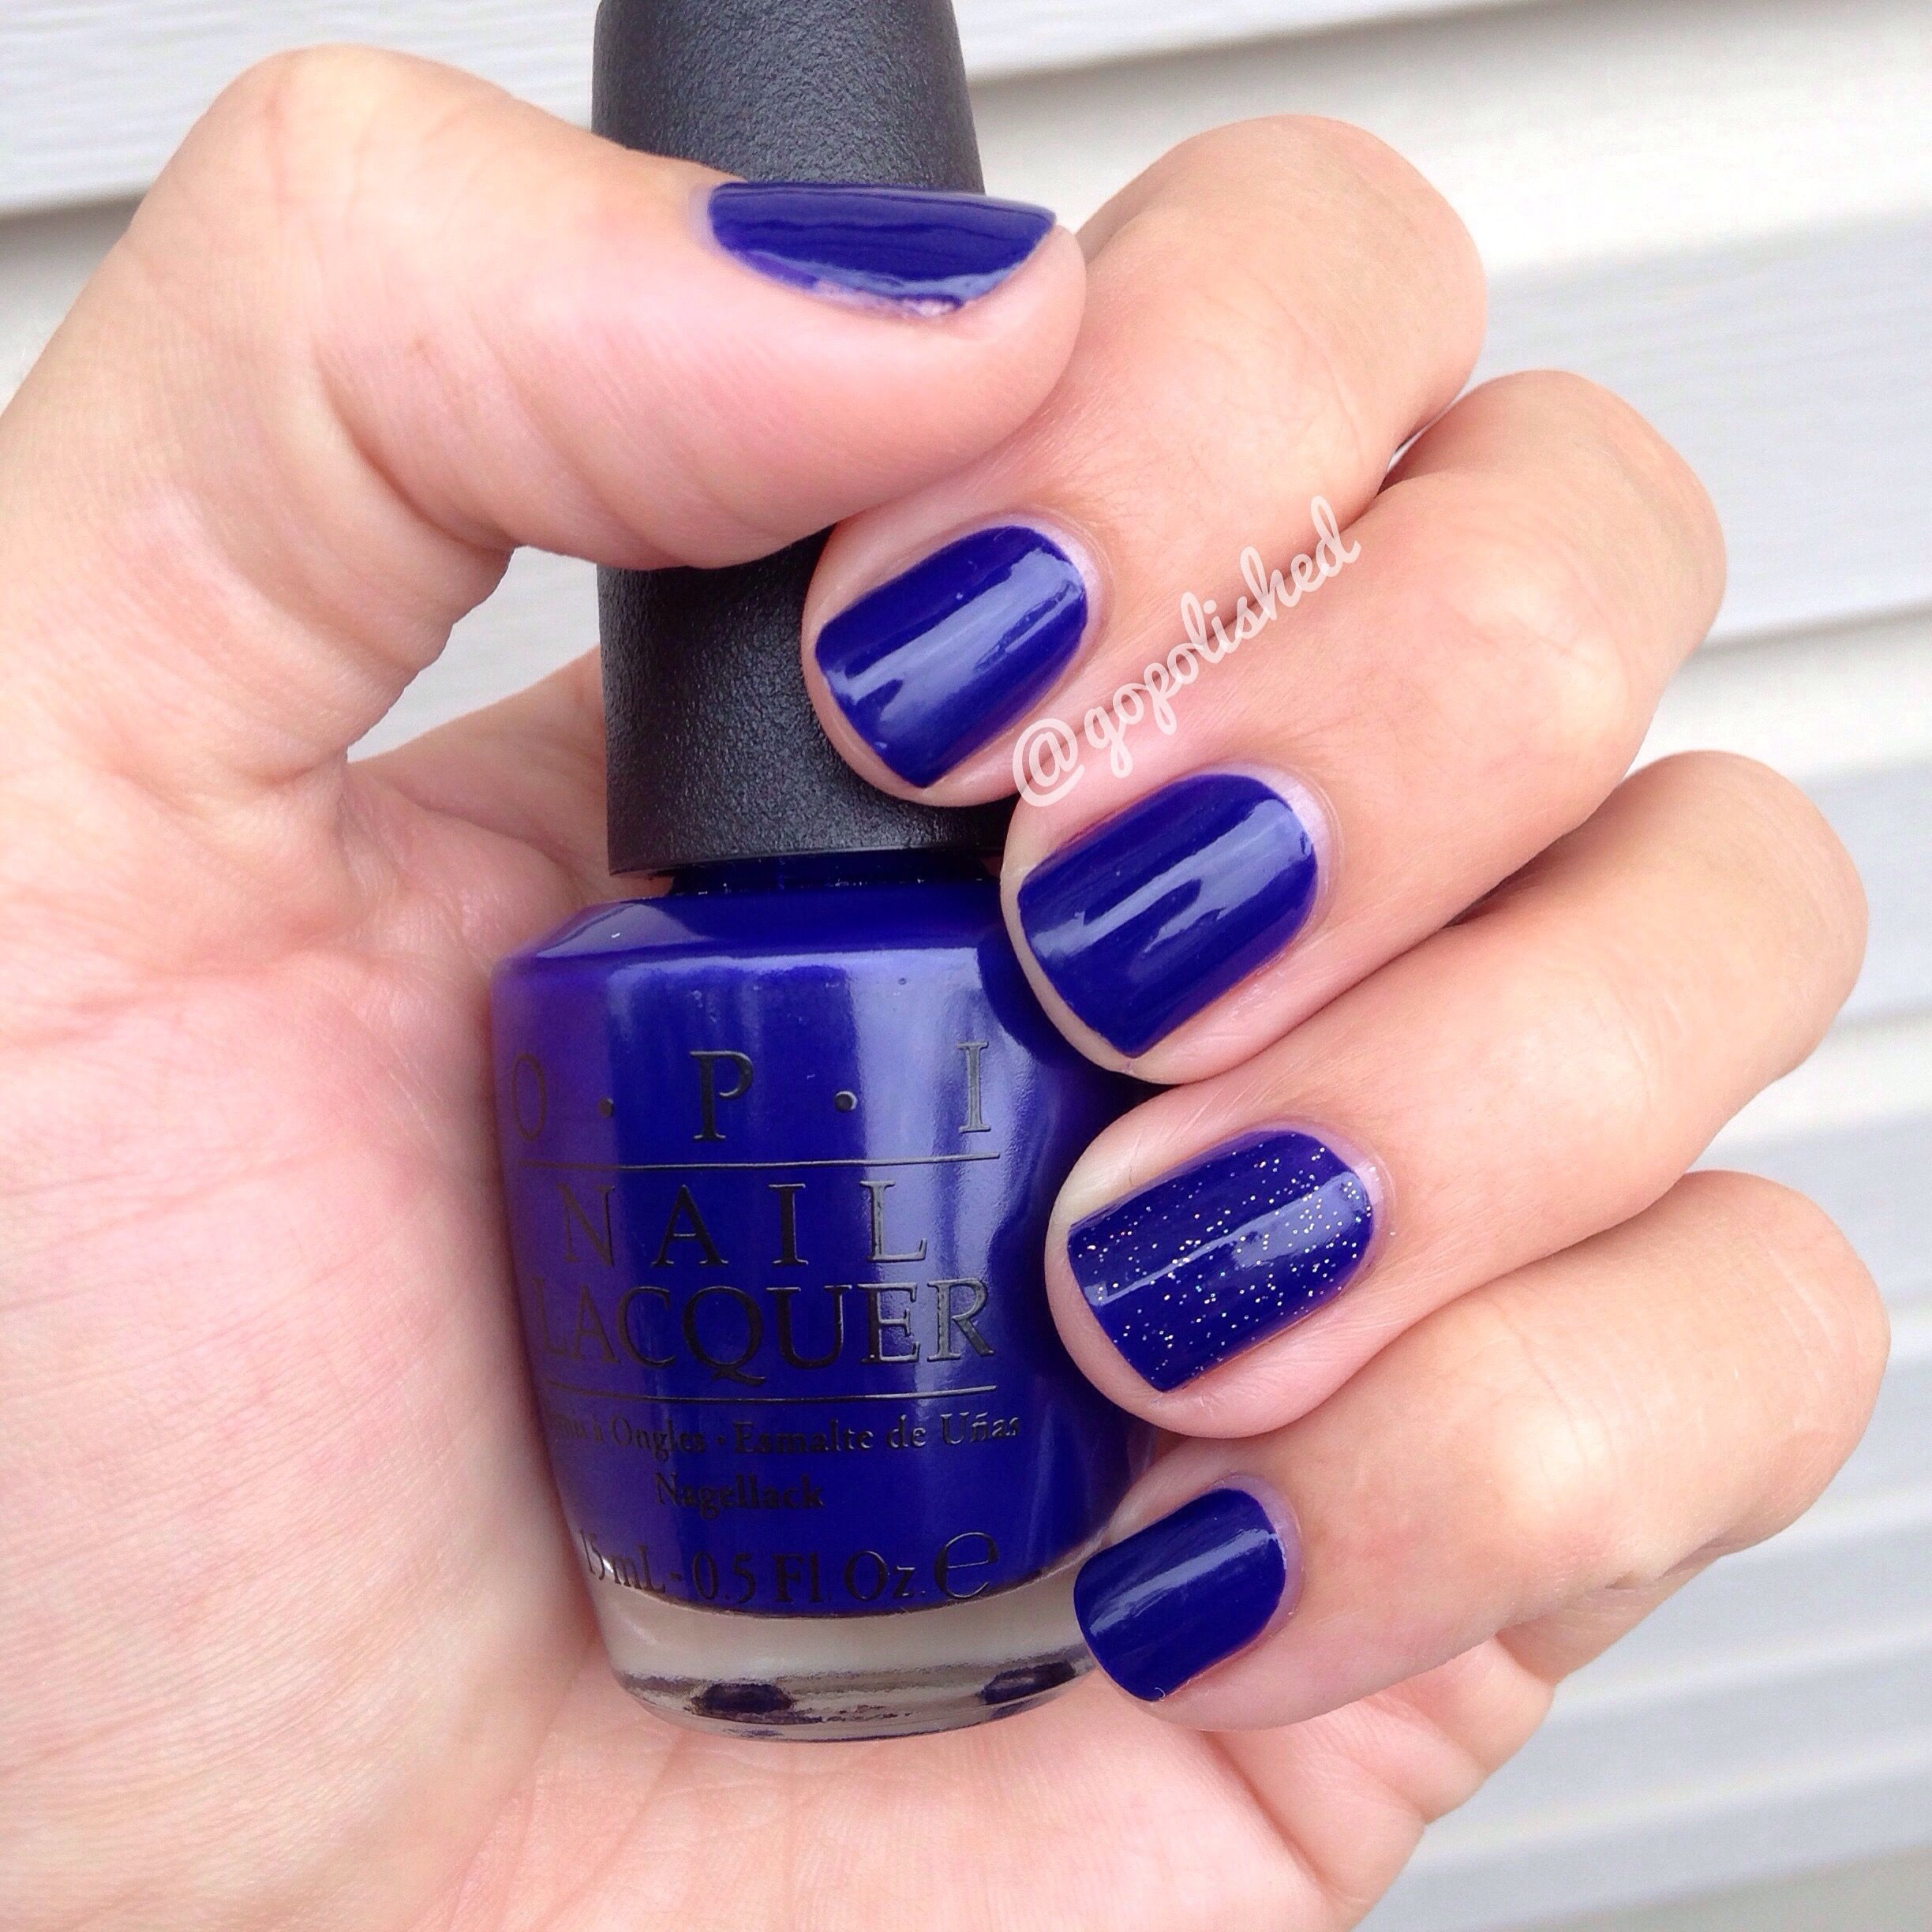 Great summer to fall transition nail polish OPIMy Car Has Navy